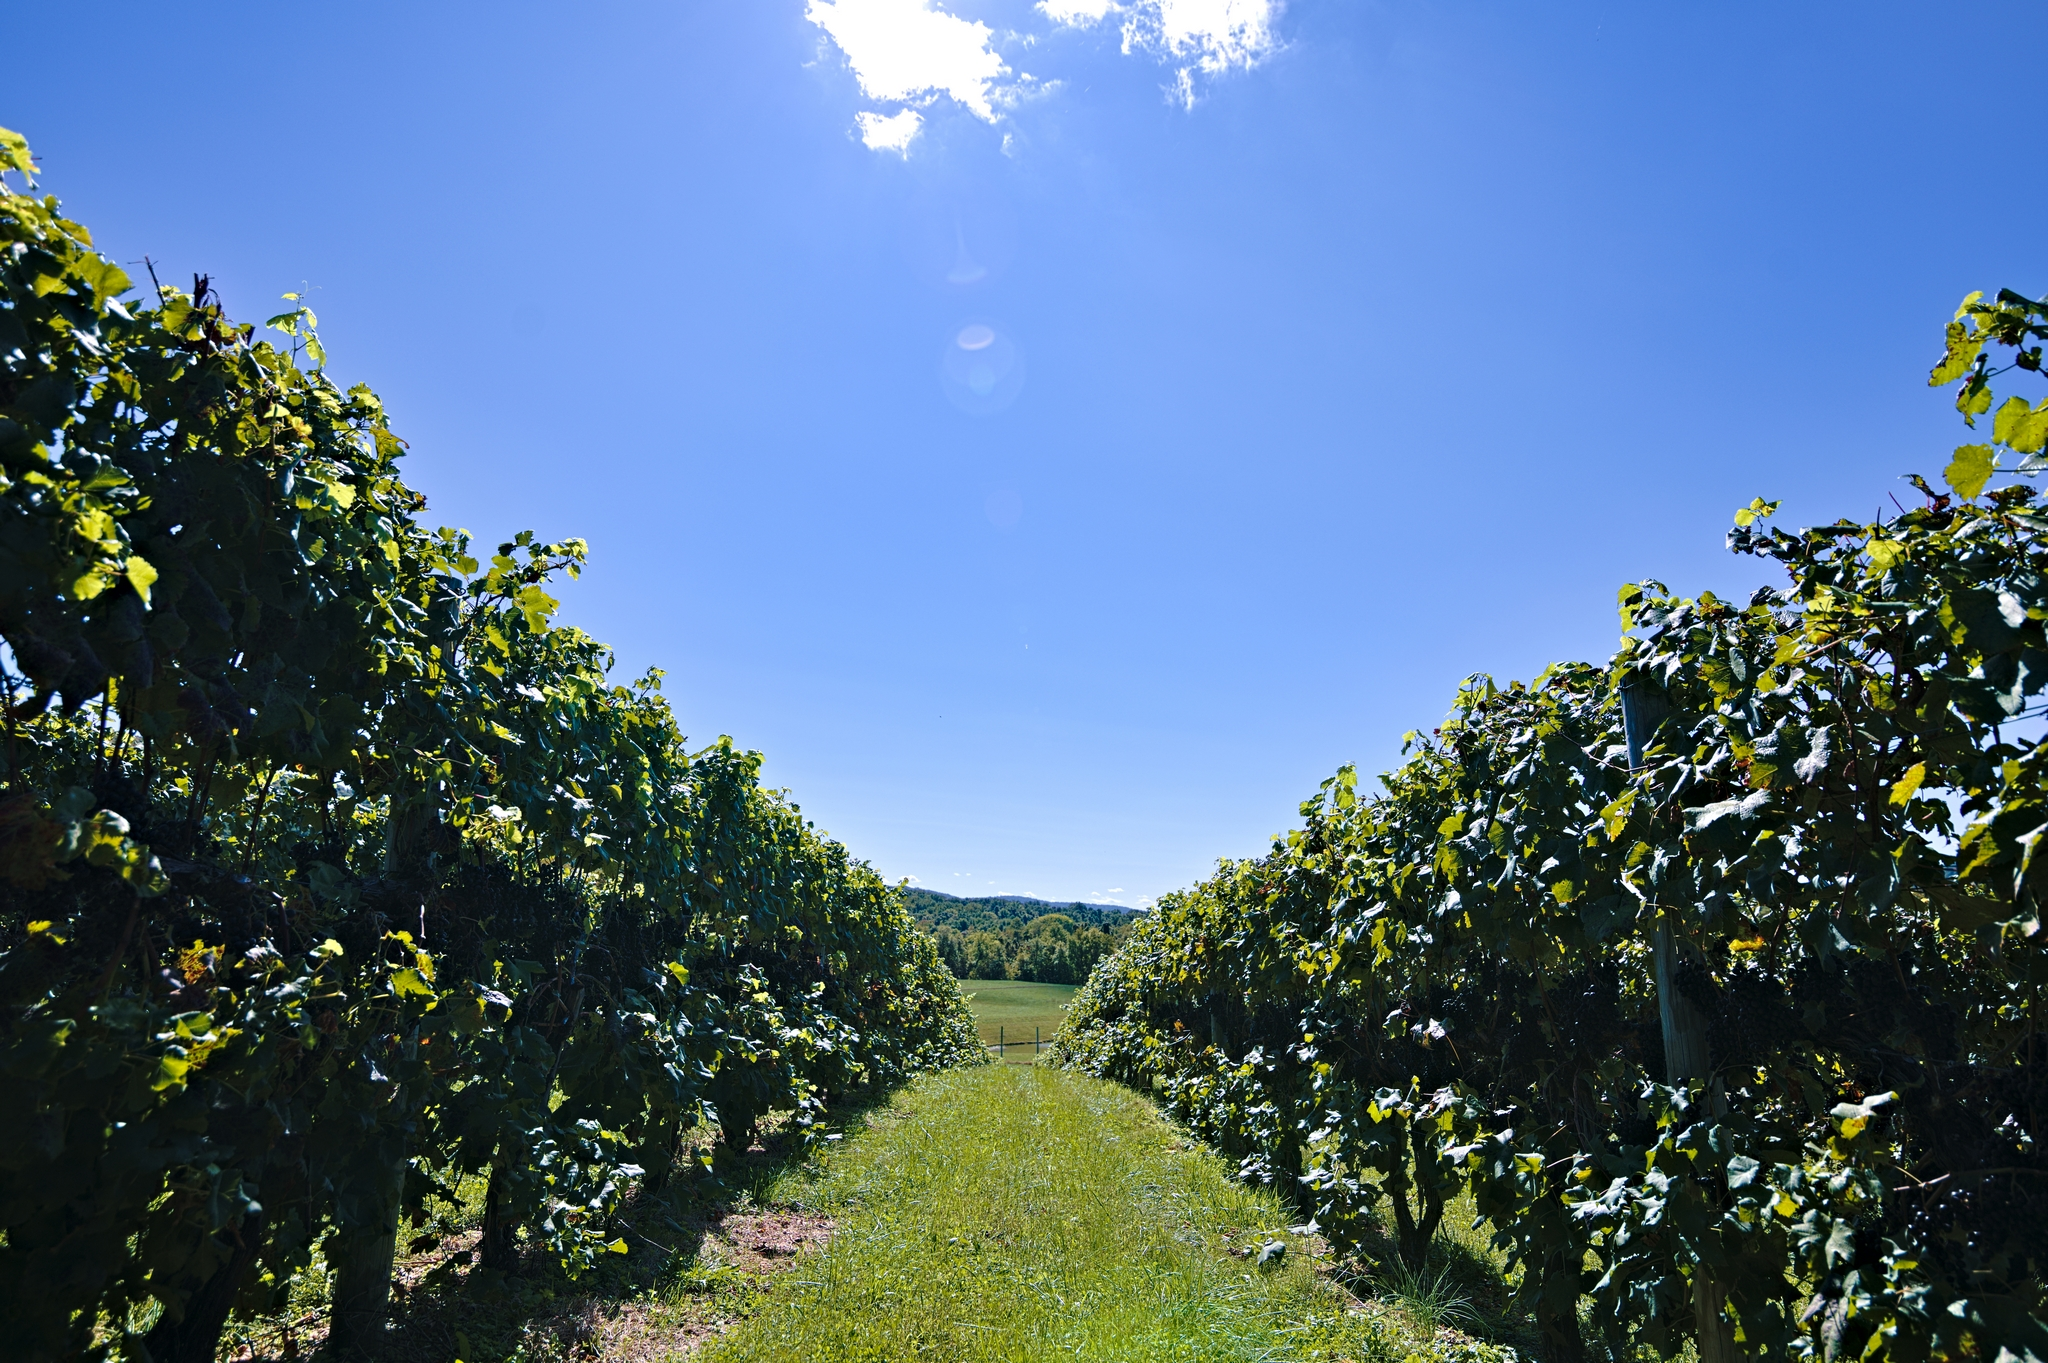 Walking through the vines